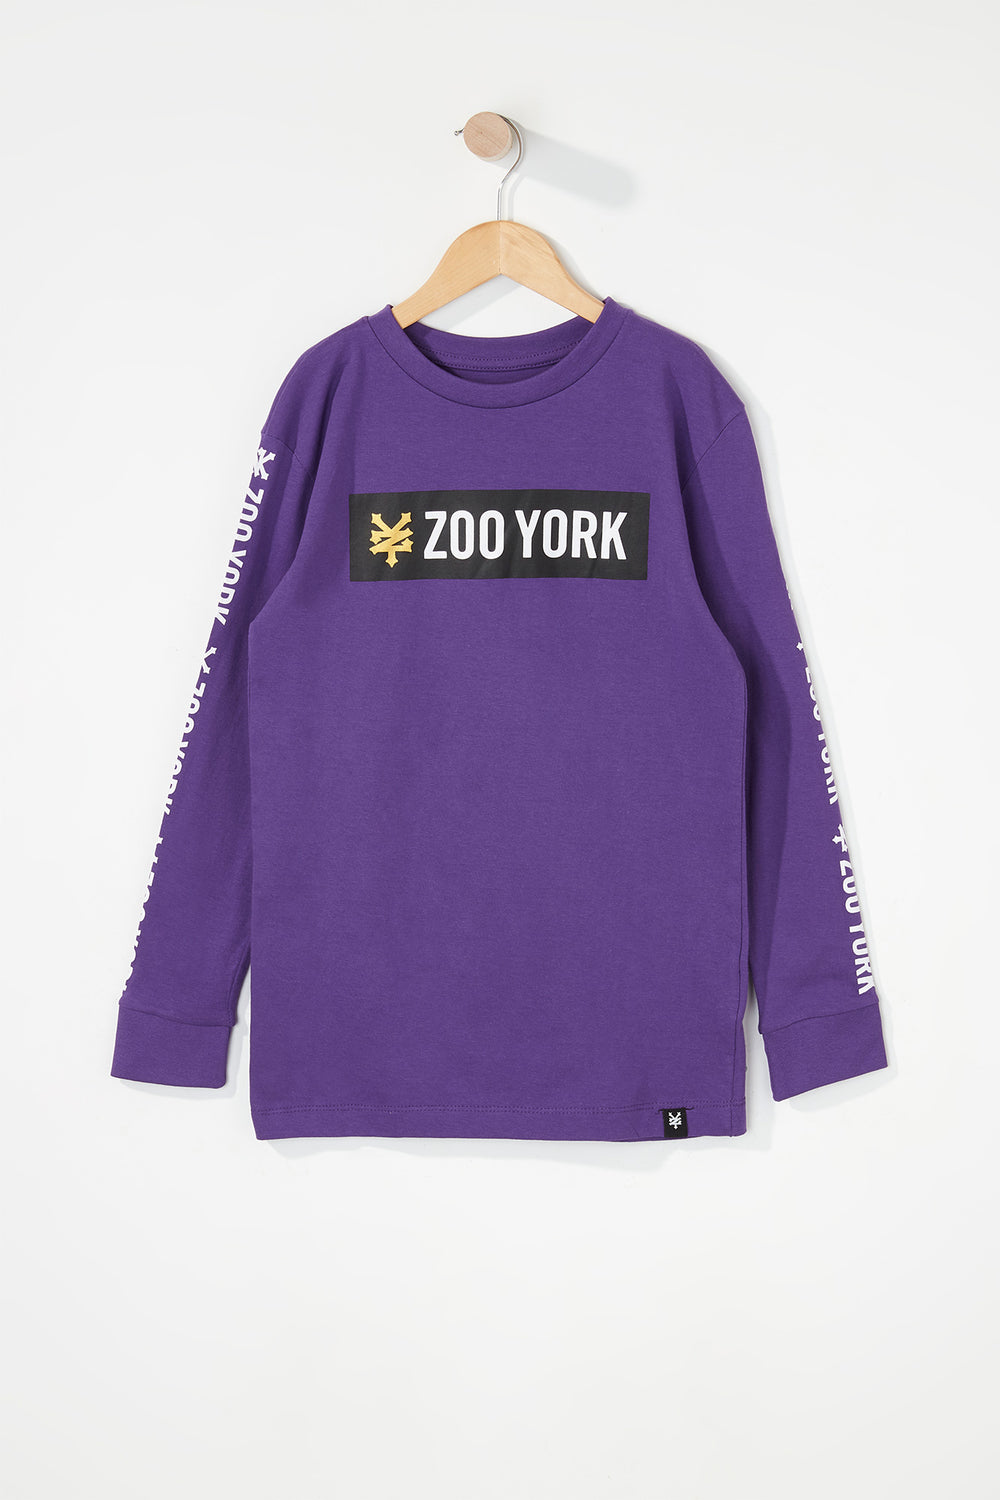 Zoo York Boys Classic Logo Long Sleeve Shirt Purple